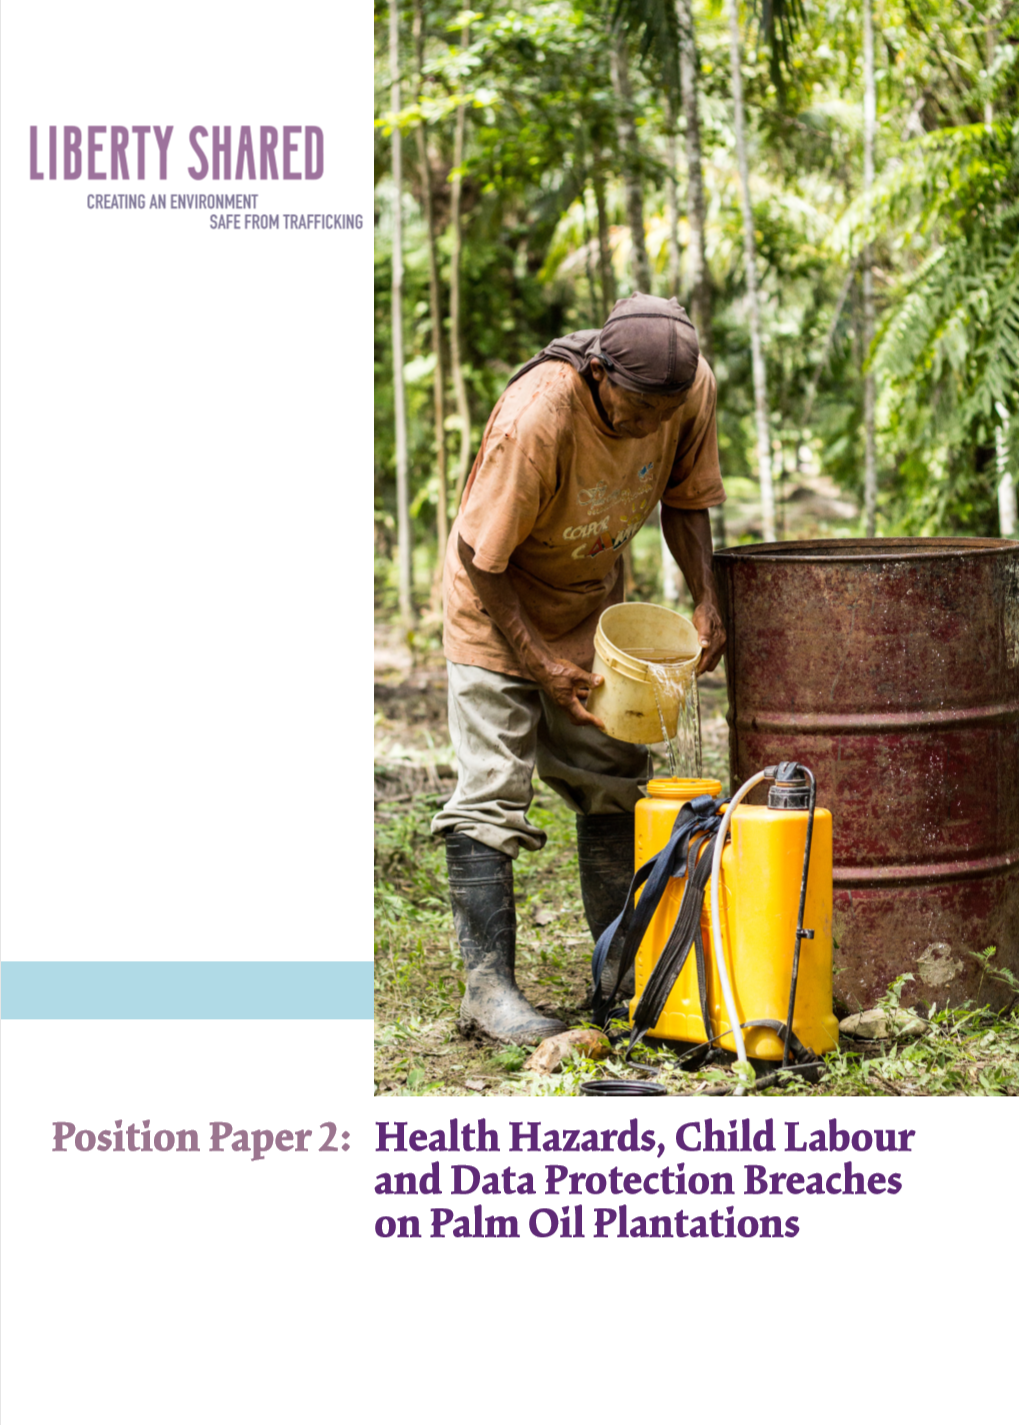 This paper is the second in a series of five position papers highlighting financial and legal risks arising from the current governance, management, supervision and administration of labour to the palm oil industry. The report identifies numerous potential liabilities for palm oil buyers and investors to consider when making investments in this sector to avoid facilitation and profit generation from labour abuses and failure to take action to address these issues. As transparency and accountability in the supply chain are on the rise, there is a need for vigilance in the industry and effective governance, monitoring and supervision systems at all levels of the palm oil supply chain to ensure that the rights of the workers are respected. -